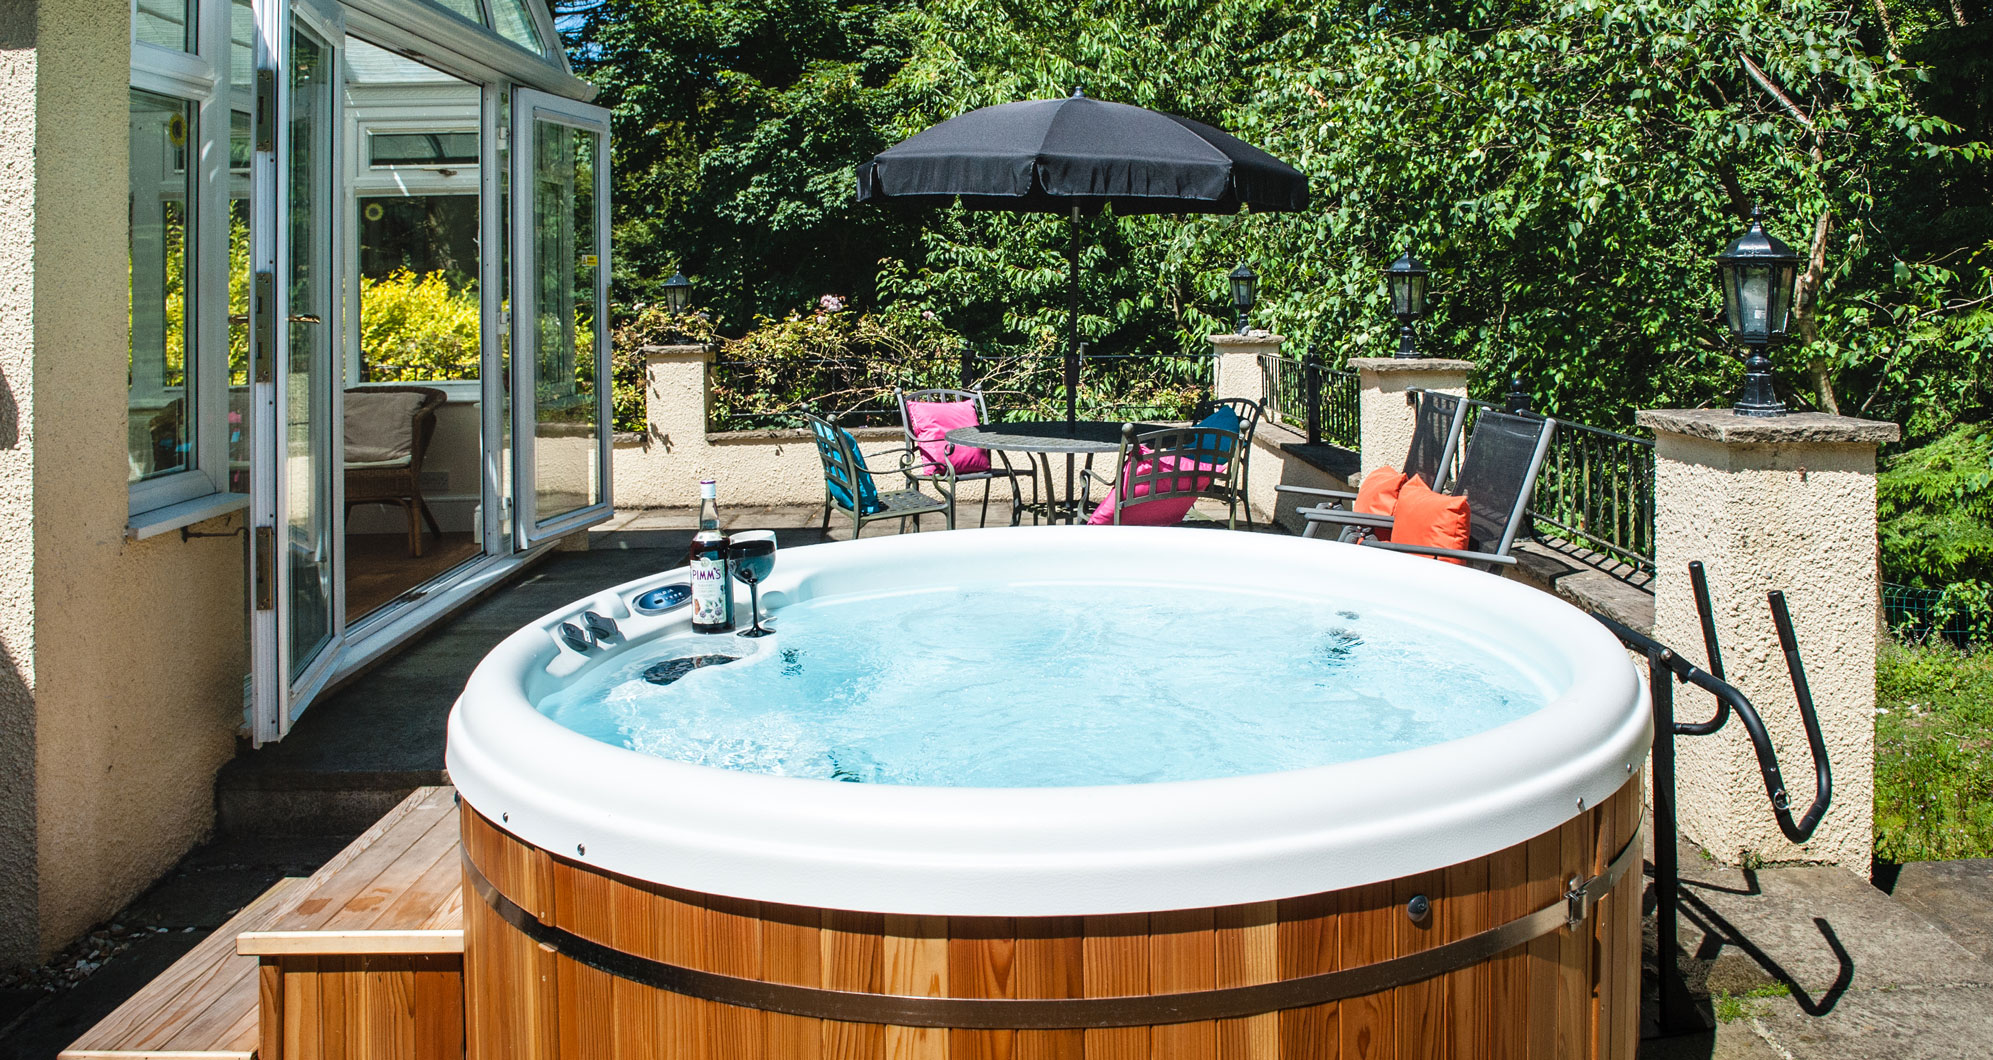 Jacuzzi Tubs Near Me Villas In Spain With Pool And Hot Tub Houston Tx Hot Tubs For Sale Near